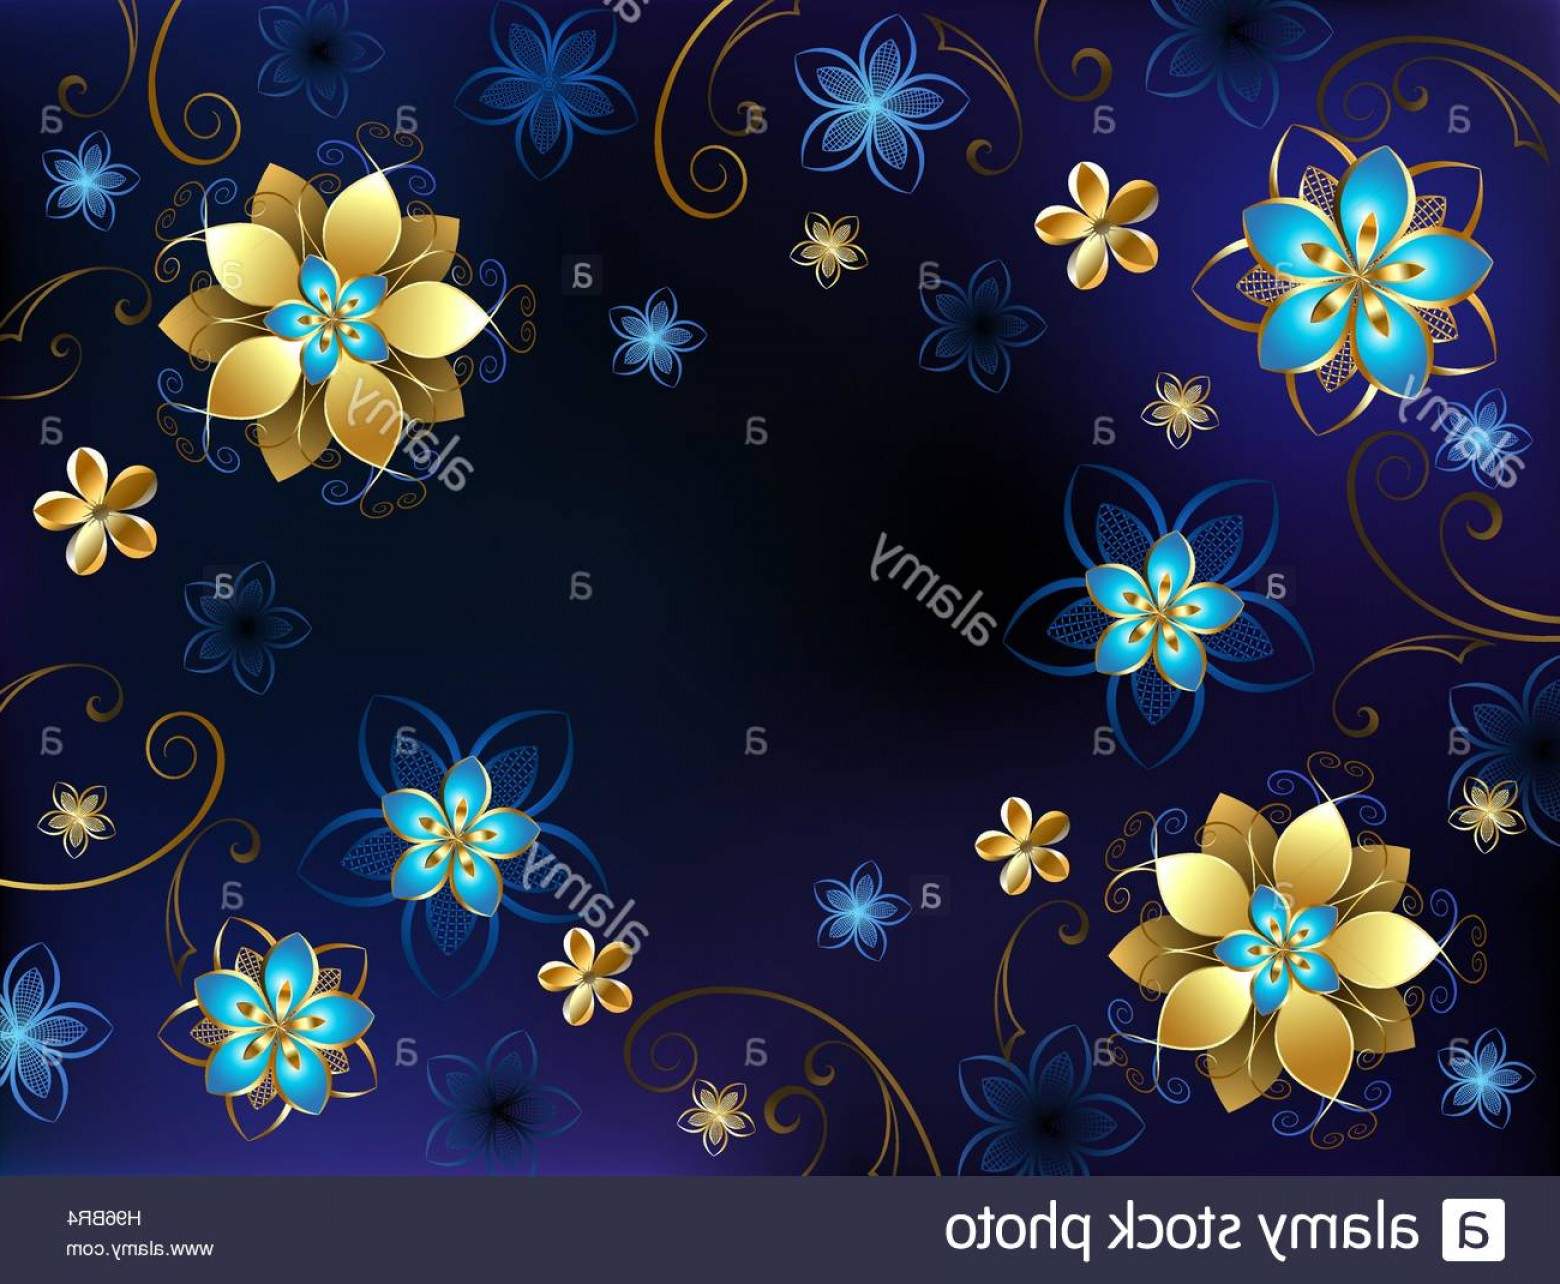 Gold And Blue Flower Vector: Stock Photo Blue Background With Gold Jewelry And Blue Flowers